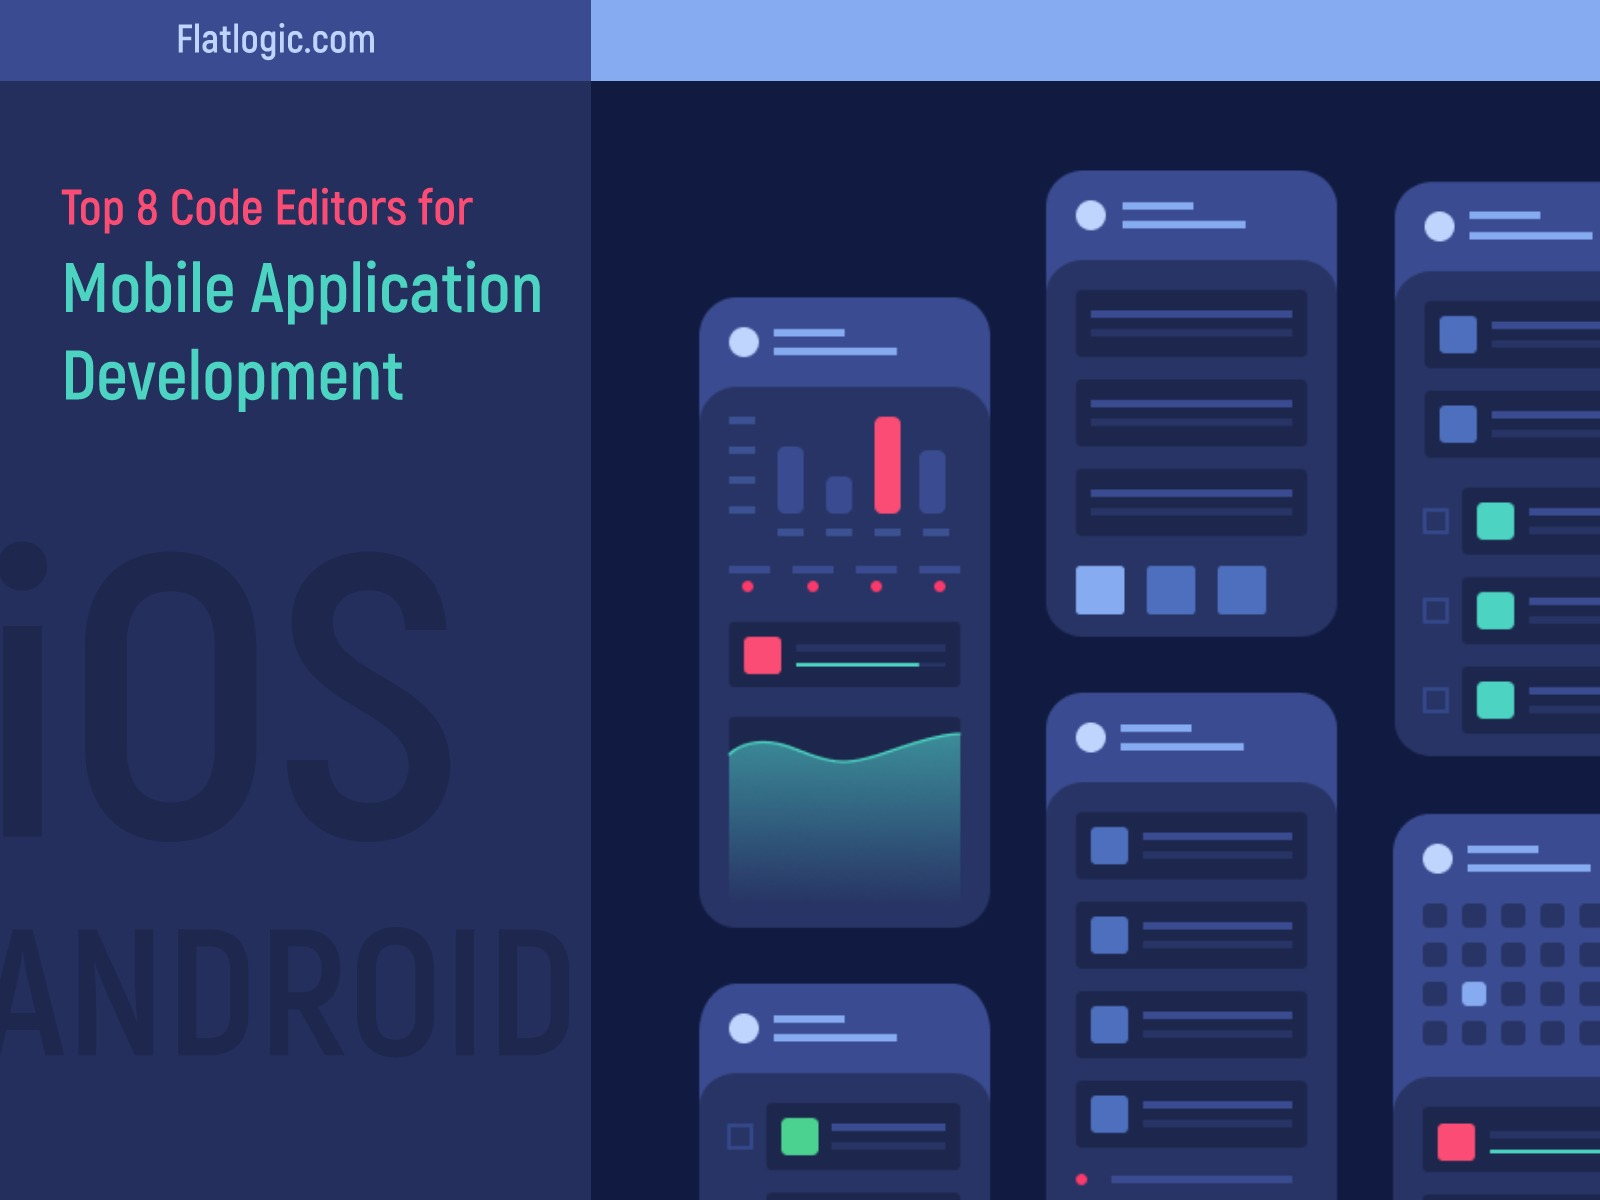 Top 8 Code Editors for Mobile Application Development